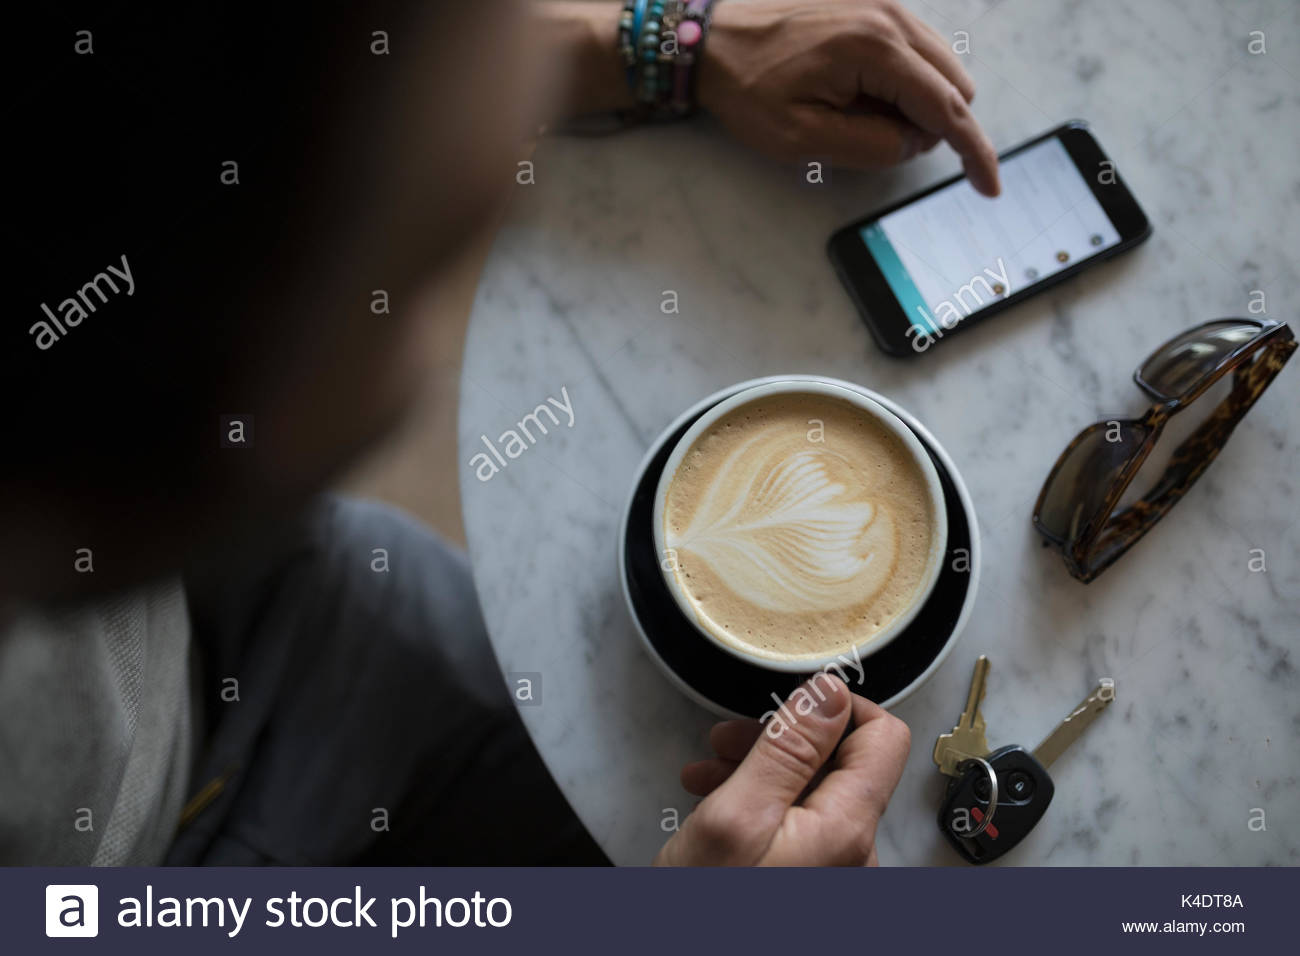 Overhead view man drinking cappuccino with milk foam leaf pattern and using smart phone in cafe - Stock Image